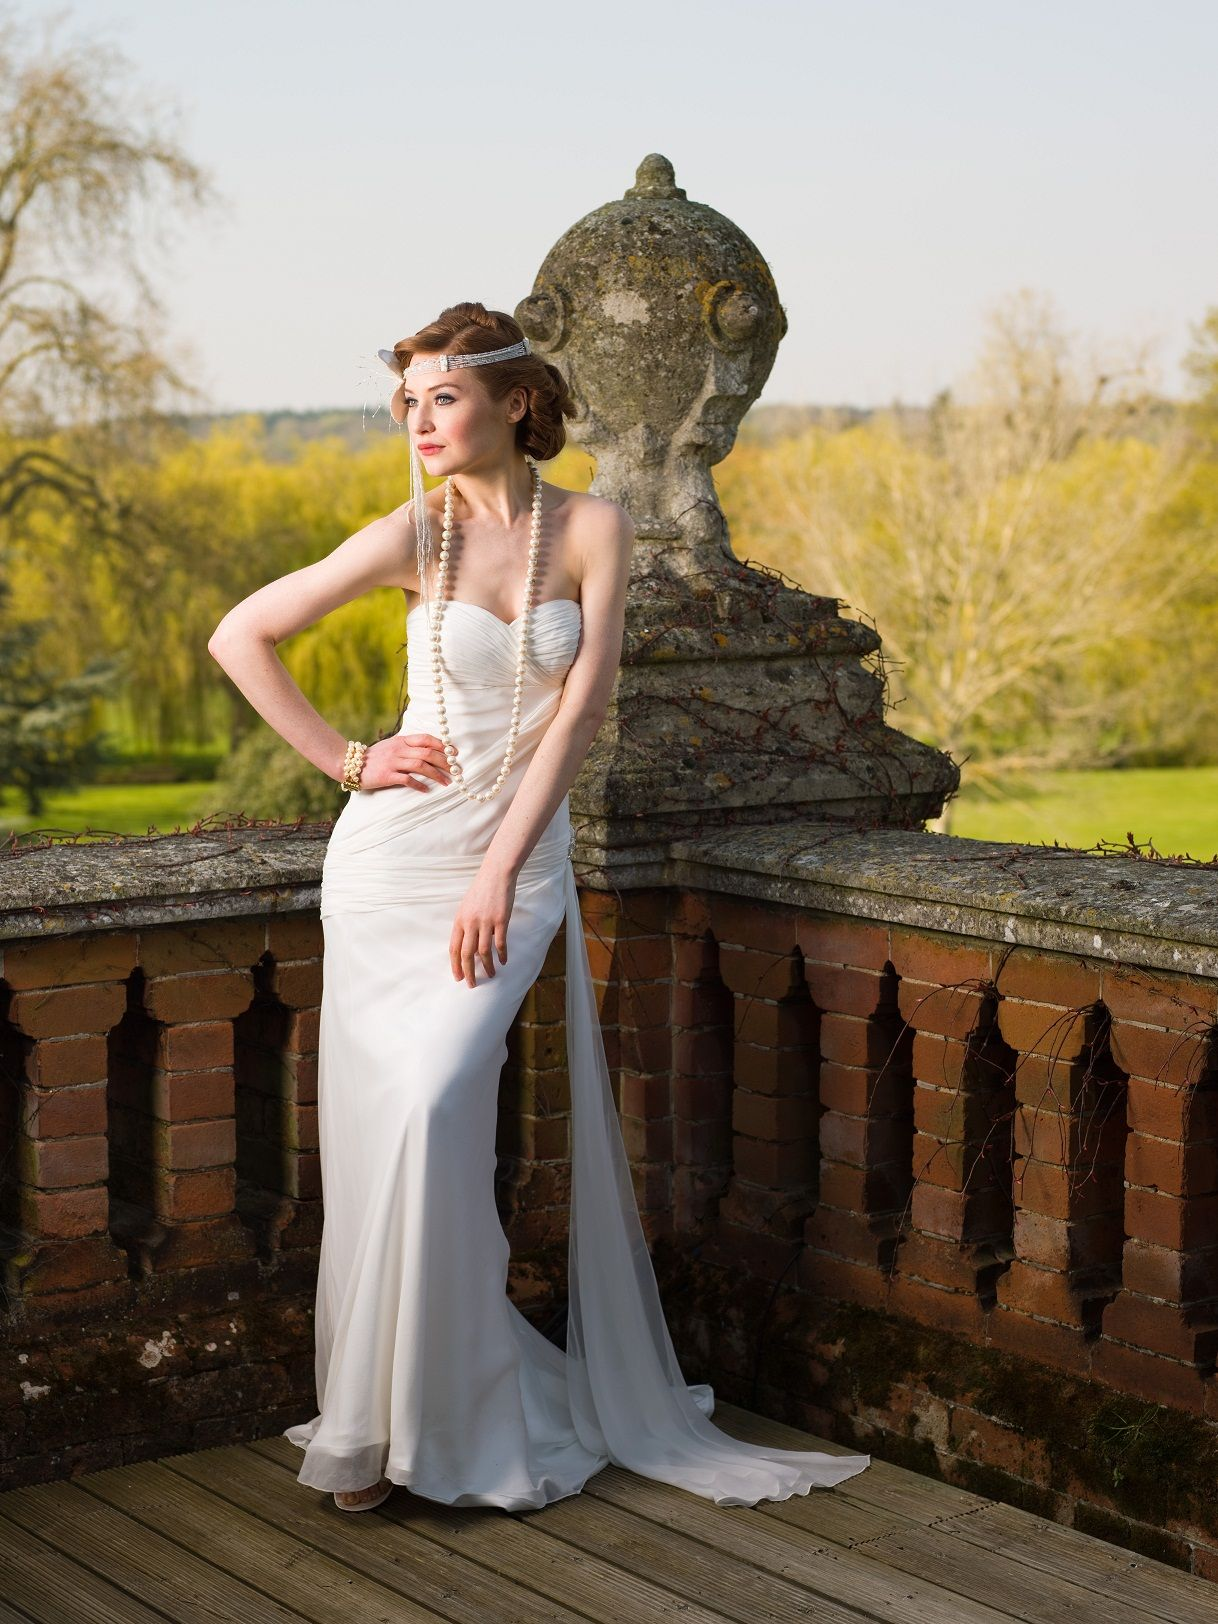 s wedding style 20s style wedding dress s wedding dresses for sale s wedding style